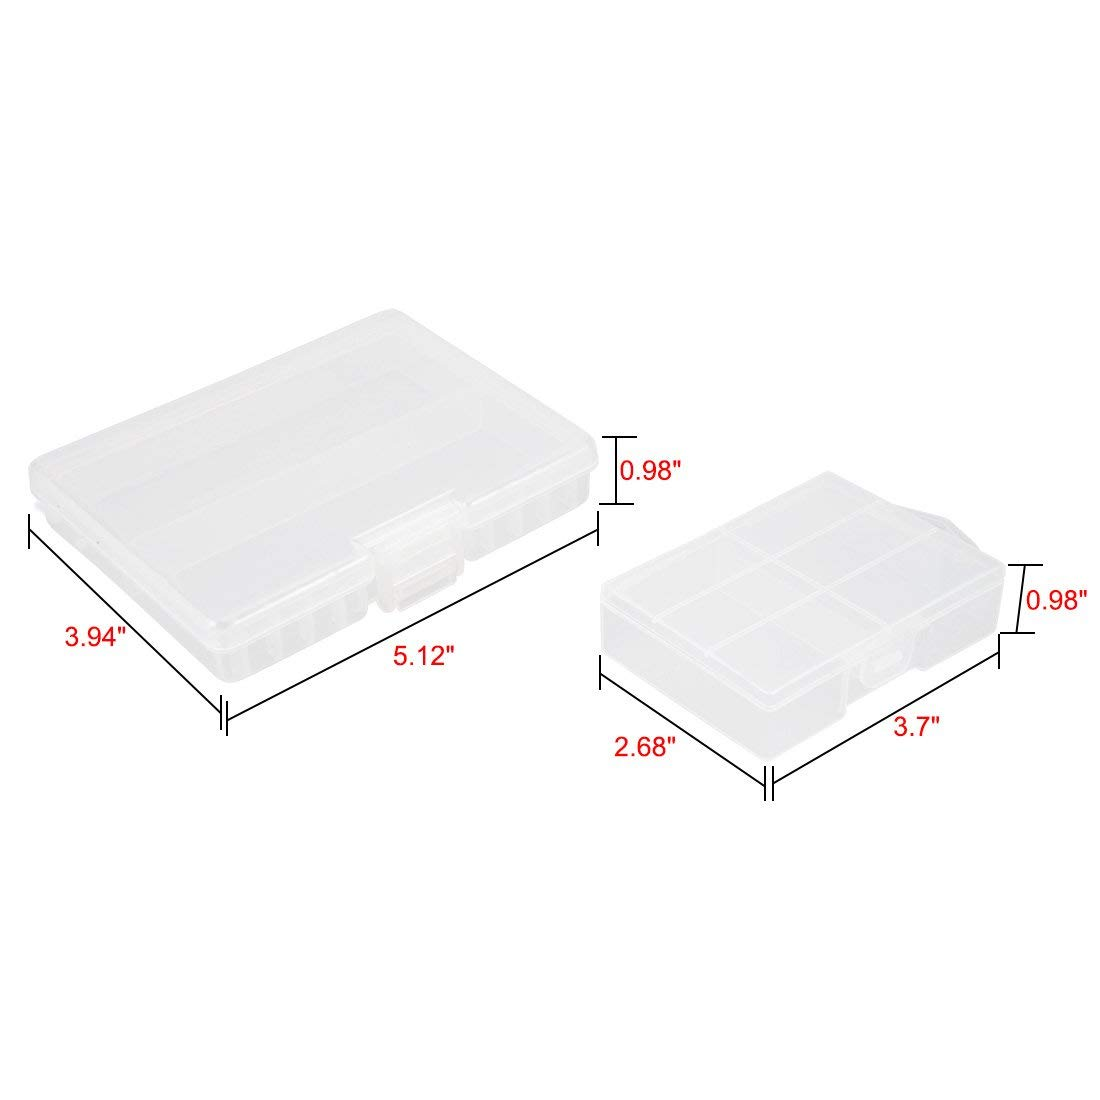 48 x AA -1pcs, 48 x AAA - 1pcs YXQ AA AAA Battery Storage Box Organizer Holder Clear Plastic Case Container Portable